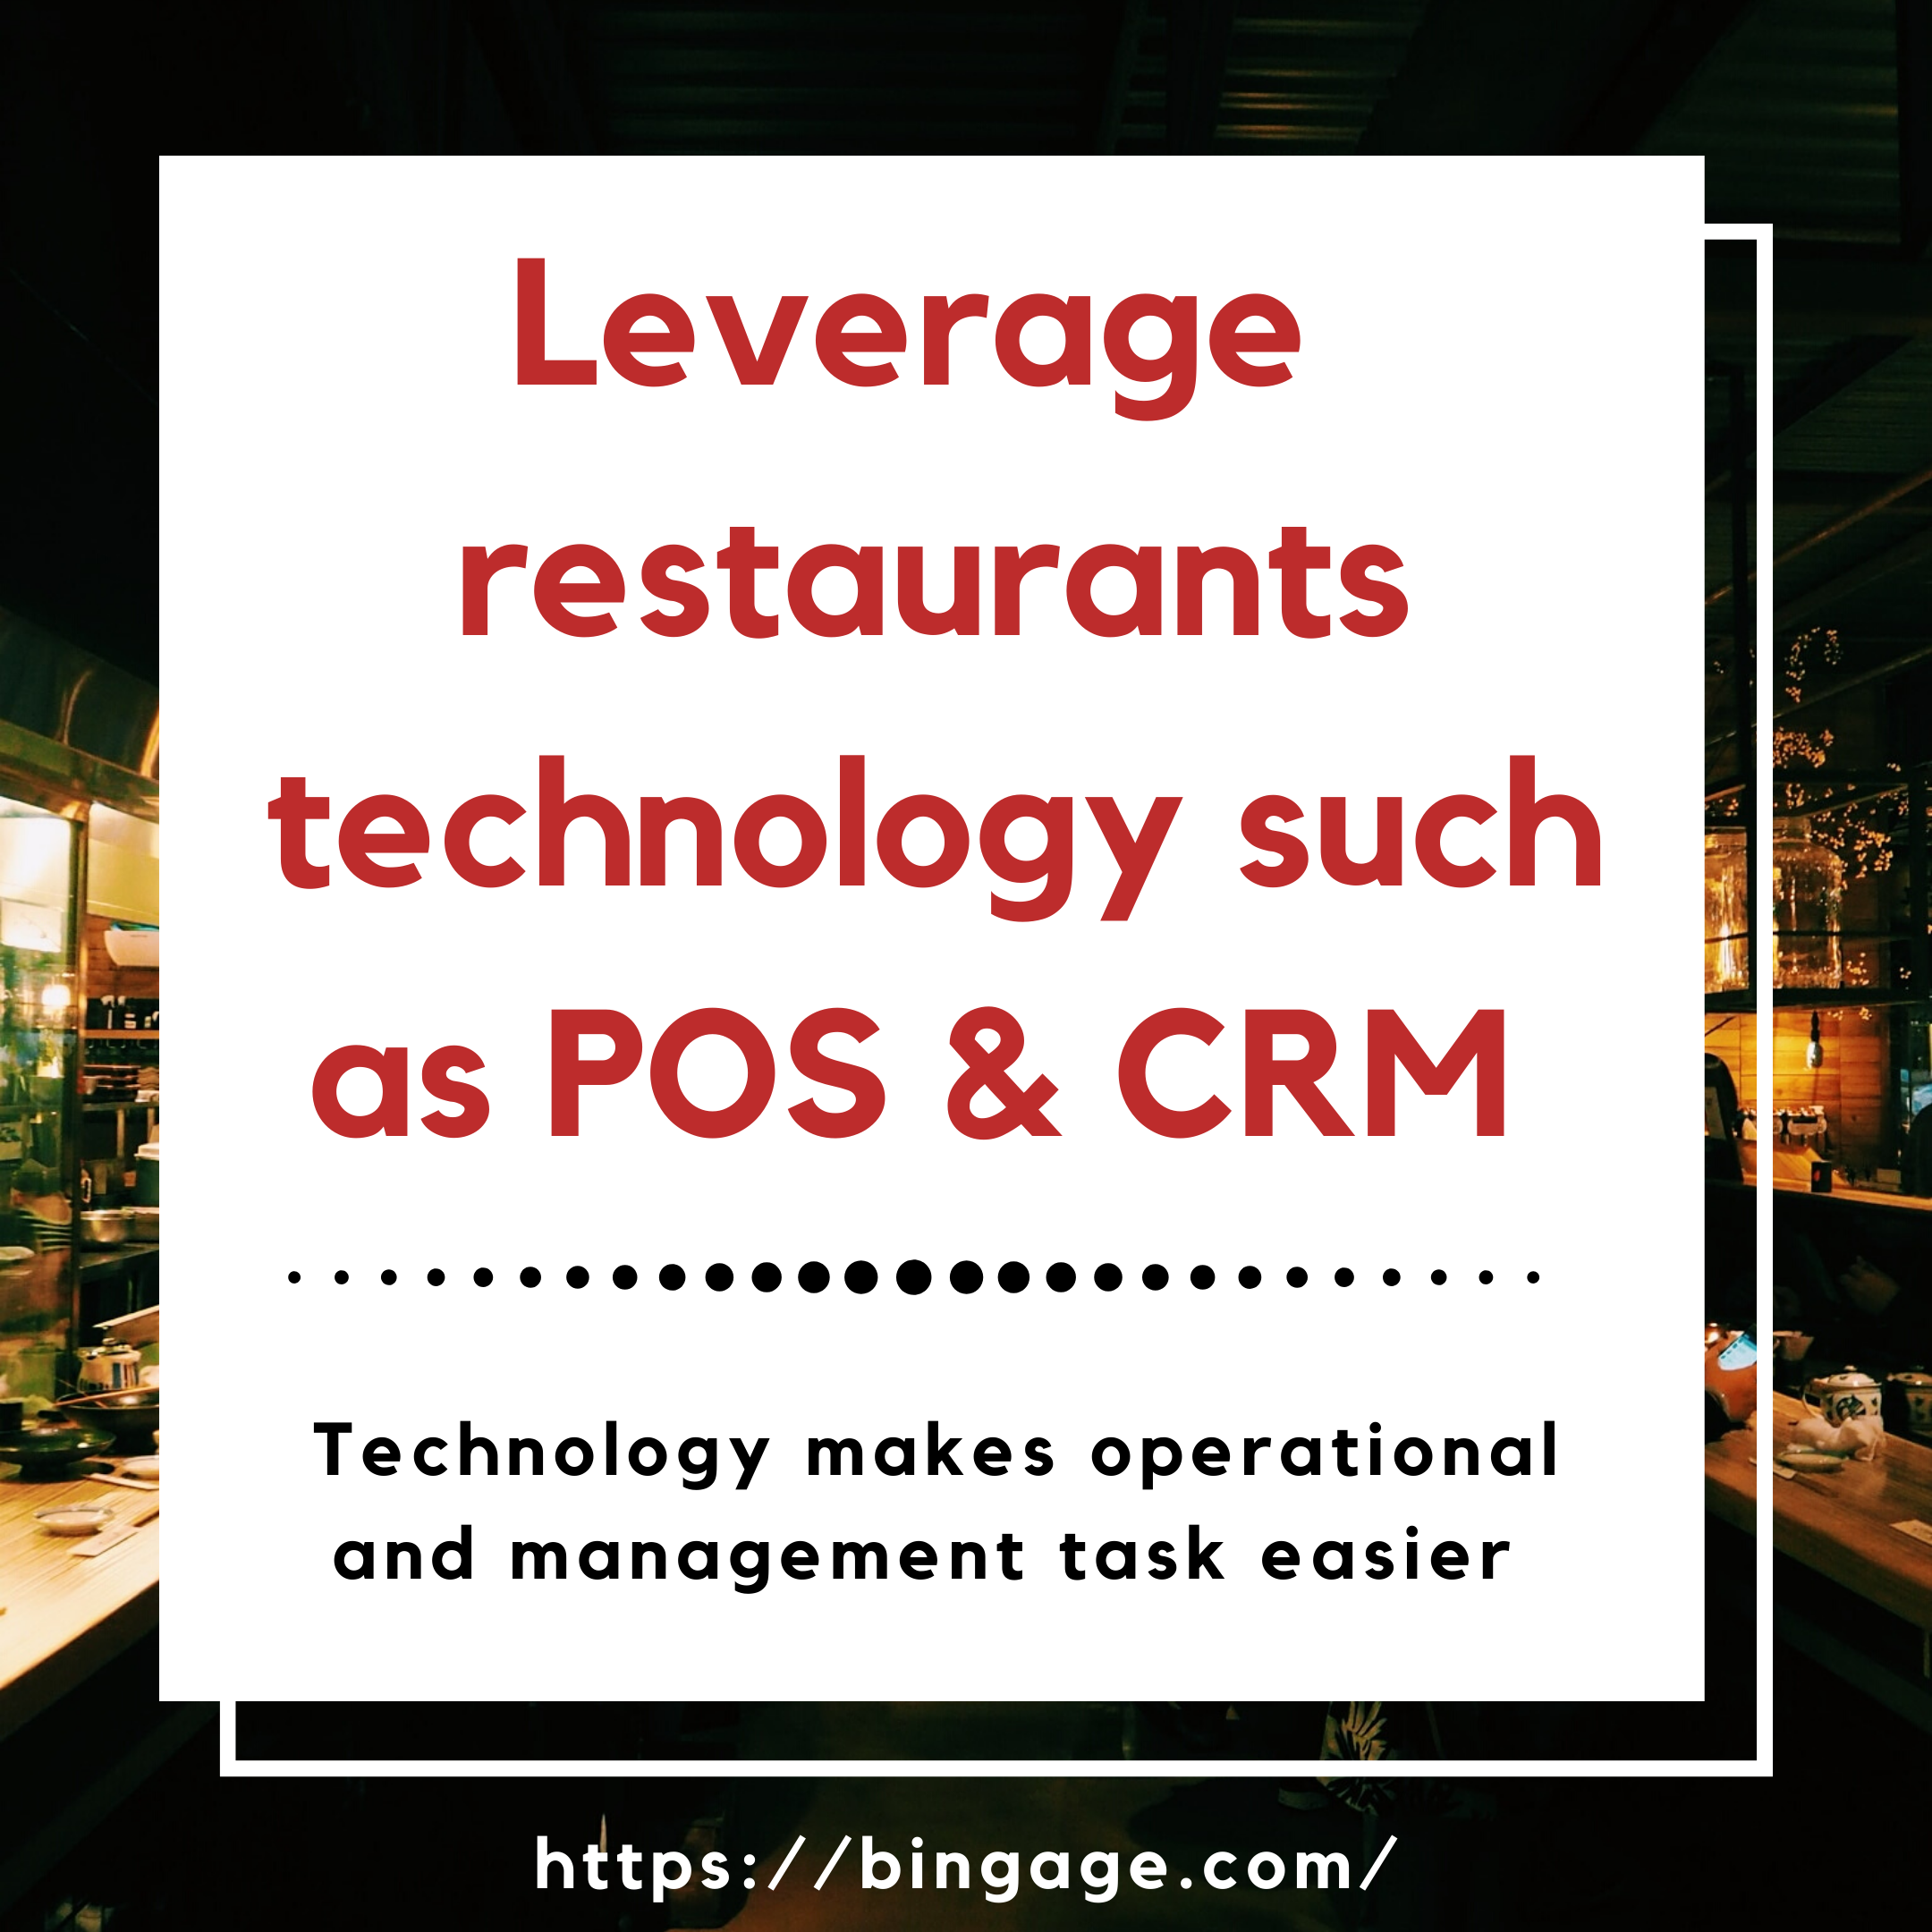 importance of restaurant technology - increase a restaurant sales